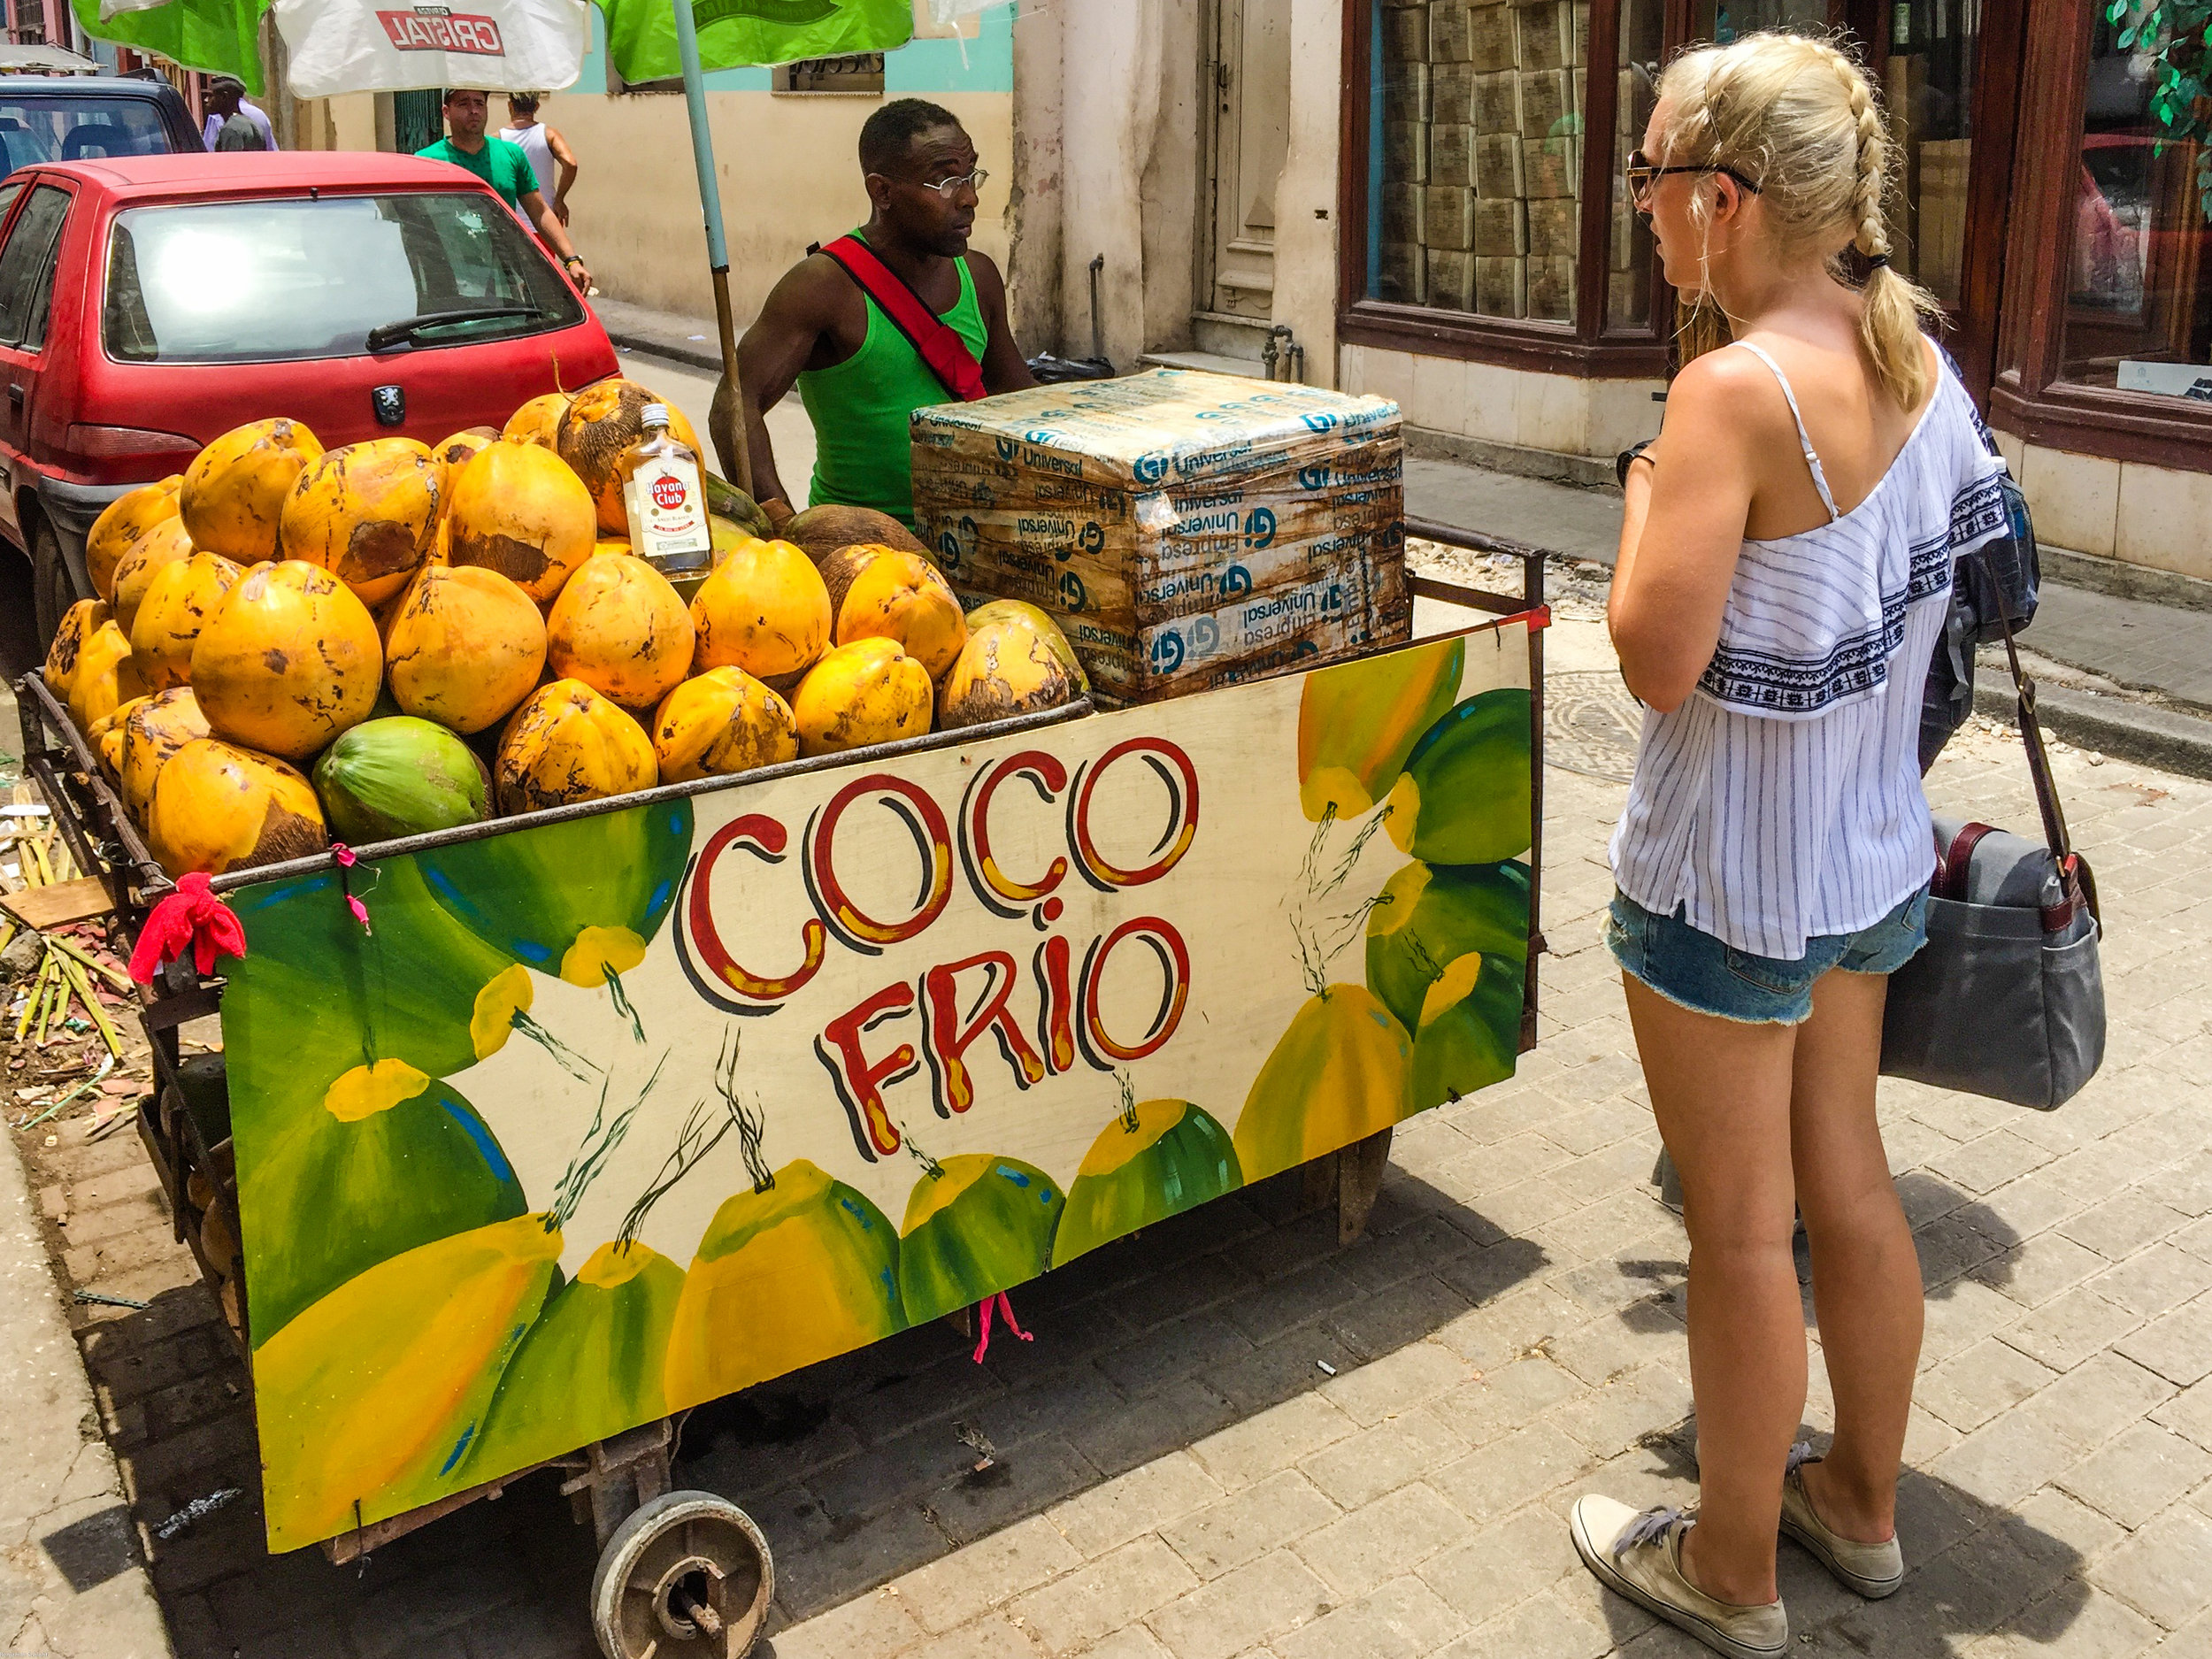 The greens and yellows of a delicious coconut stall